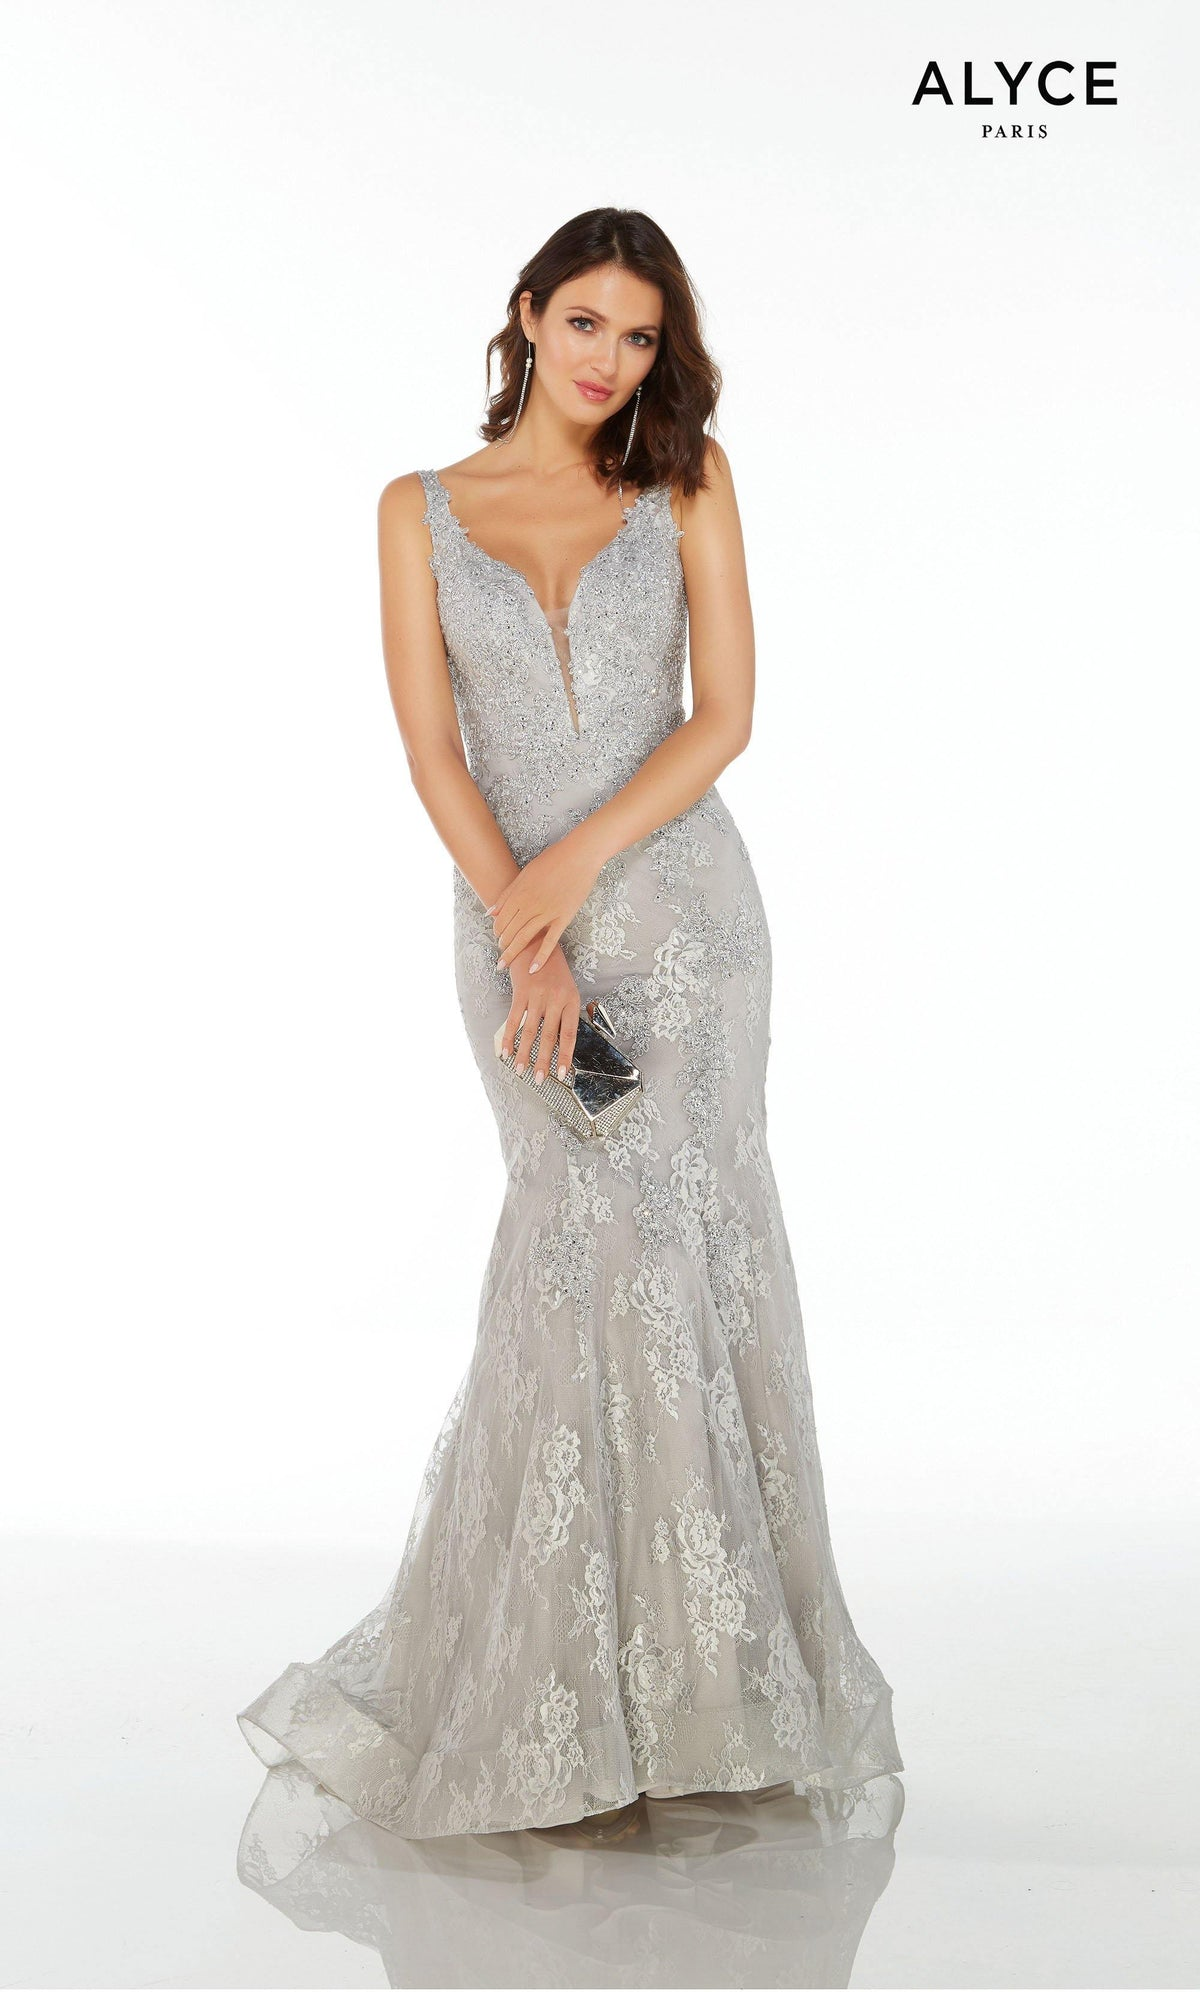 Silver long lace formal dress for women with an illusion plunging neckline